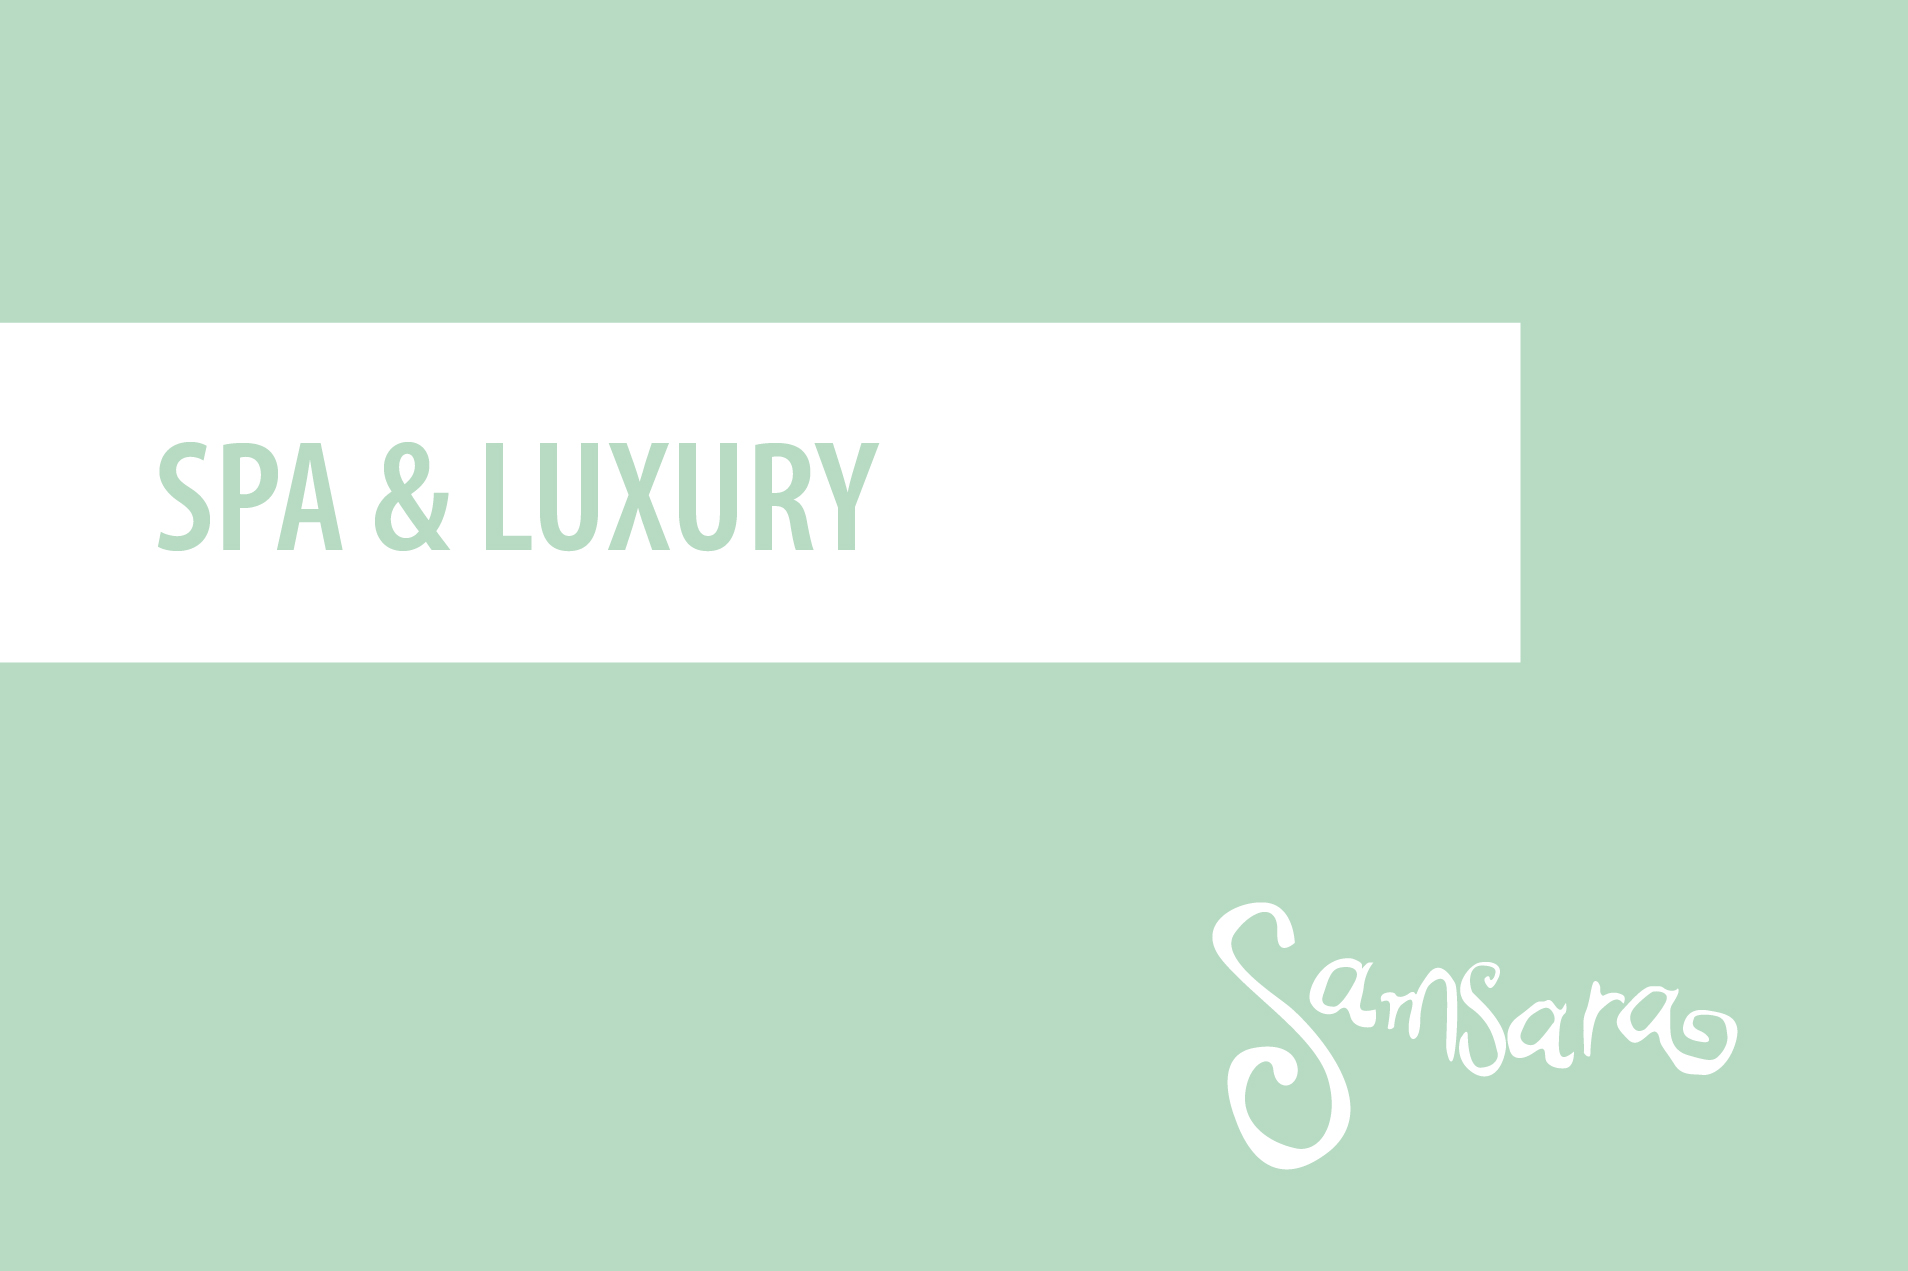 SPA & LUXURY